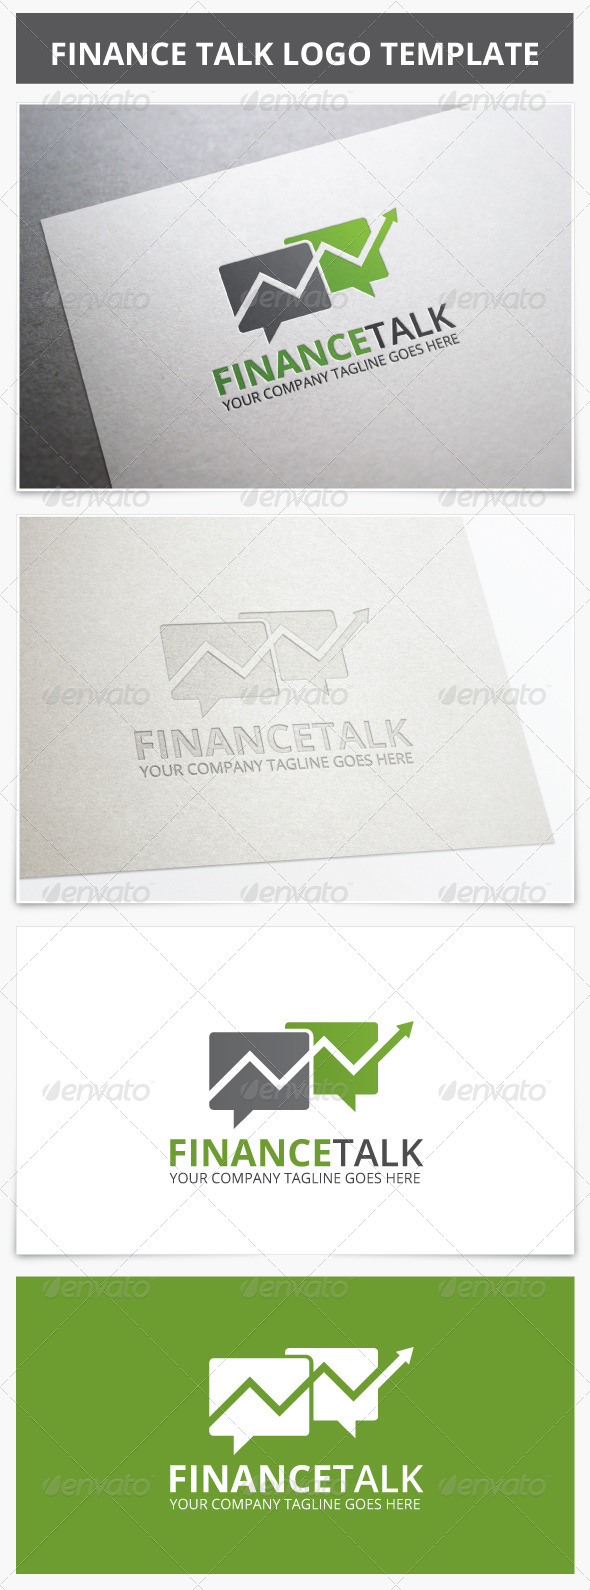 Finance Talk Logo - Vector Abstract